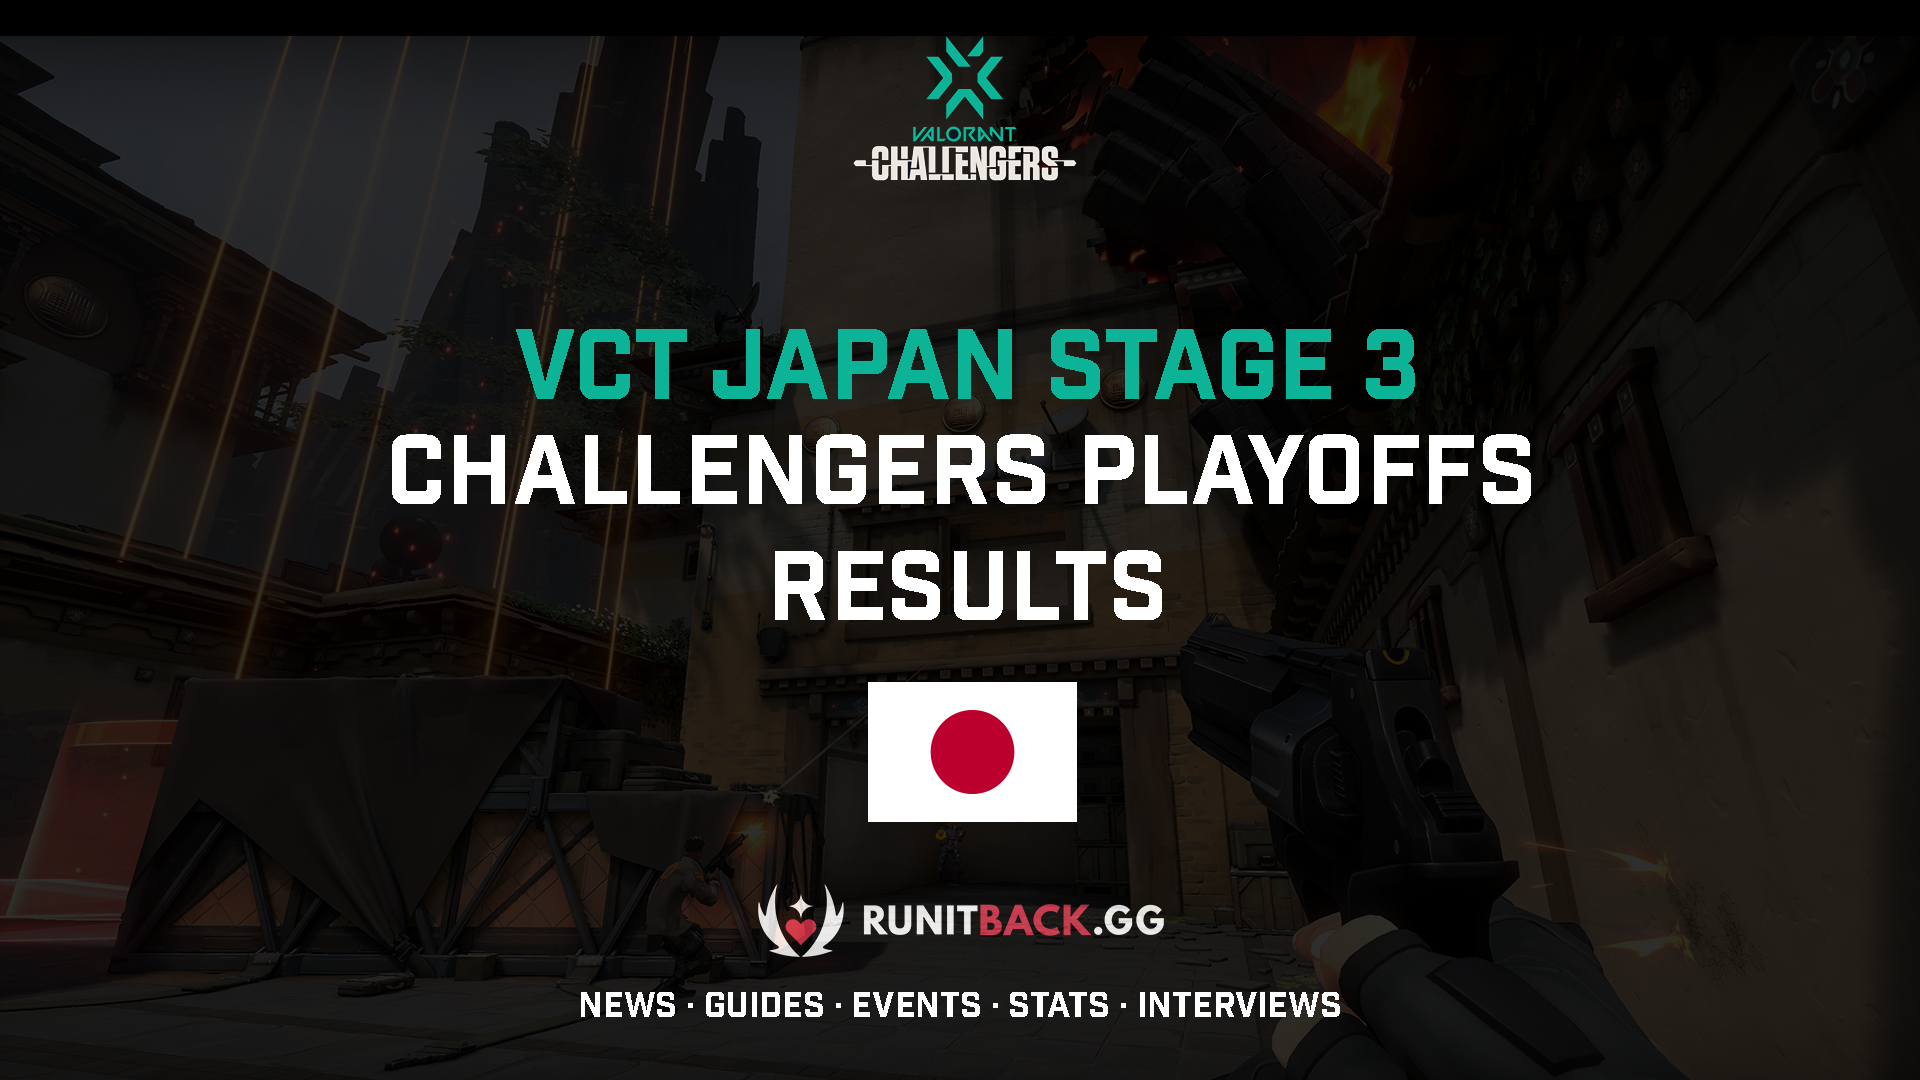 VCT Japan Stage 3 Challengers Playoffs Results